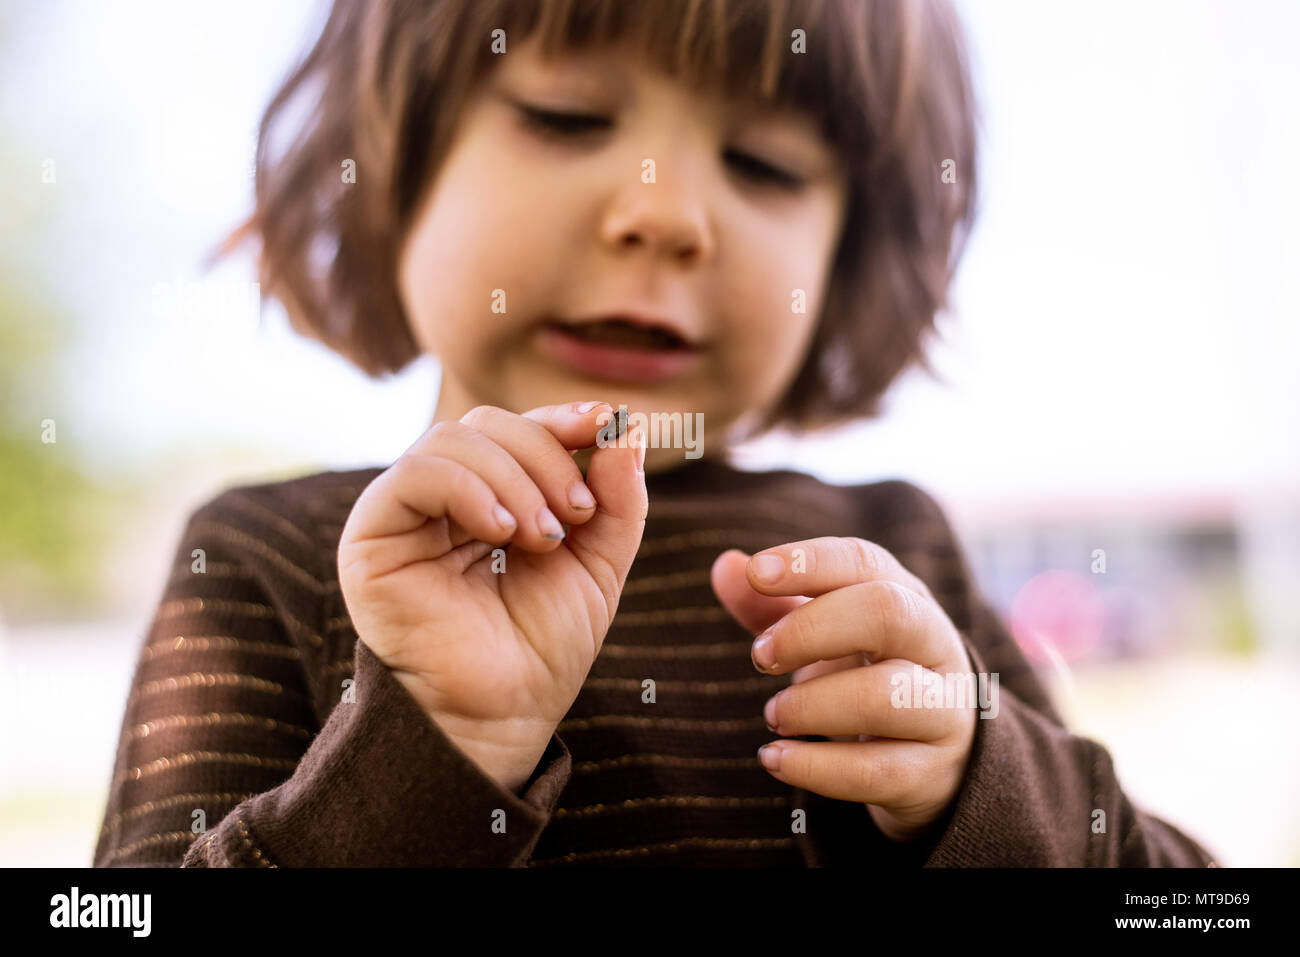 A toddler girl holding a bug in her hands. - Stock Image